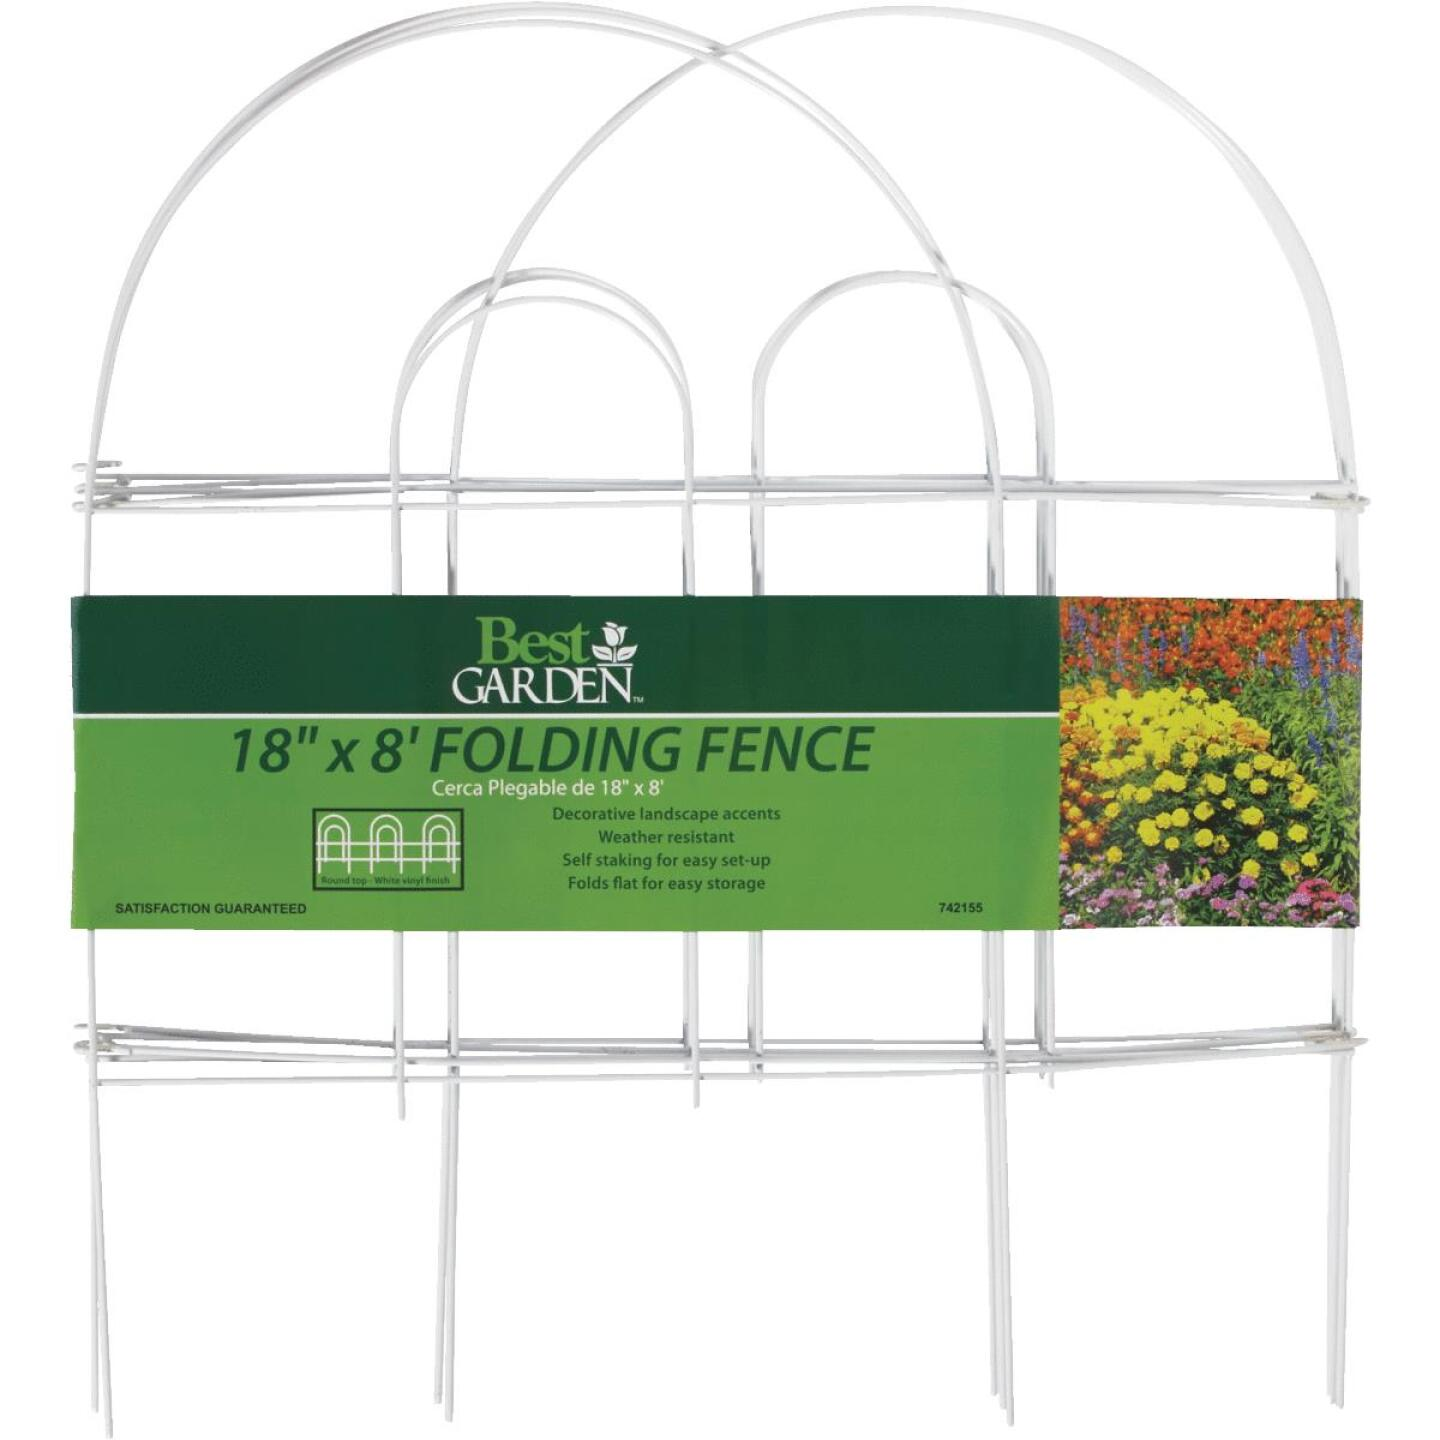 Best Garden 8 Ft. Wire Folding Fence Image 5